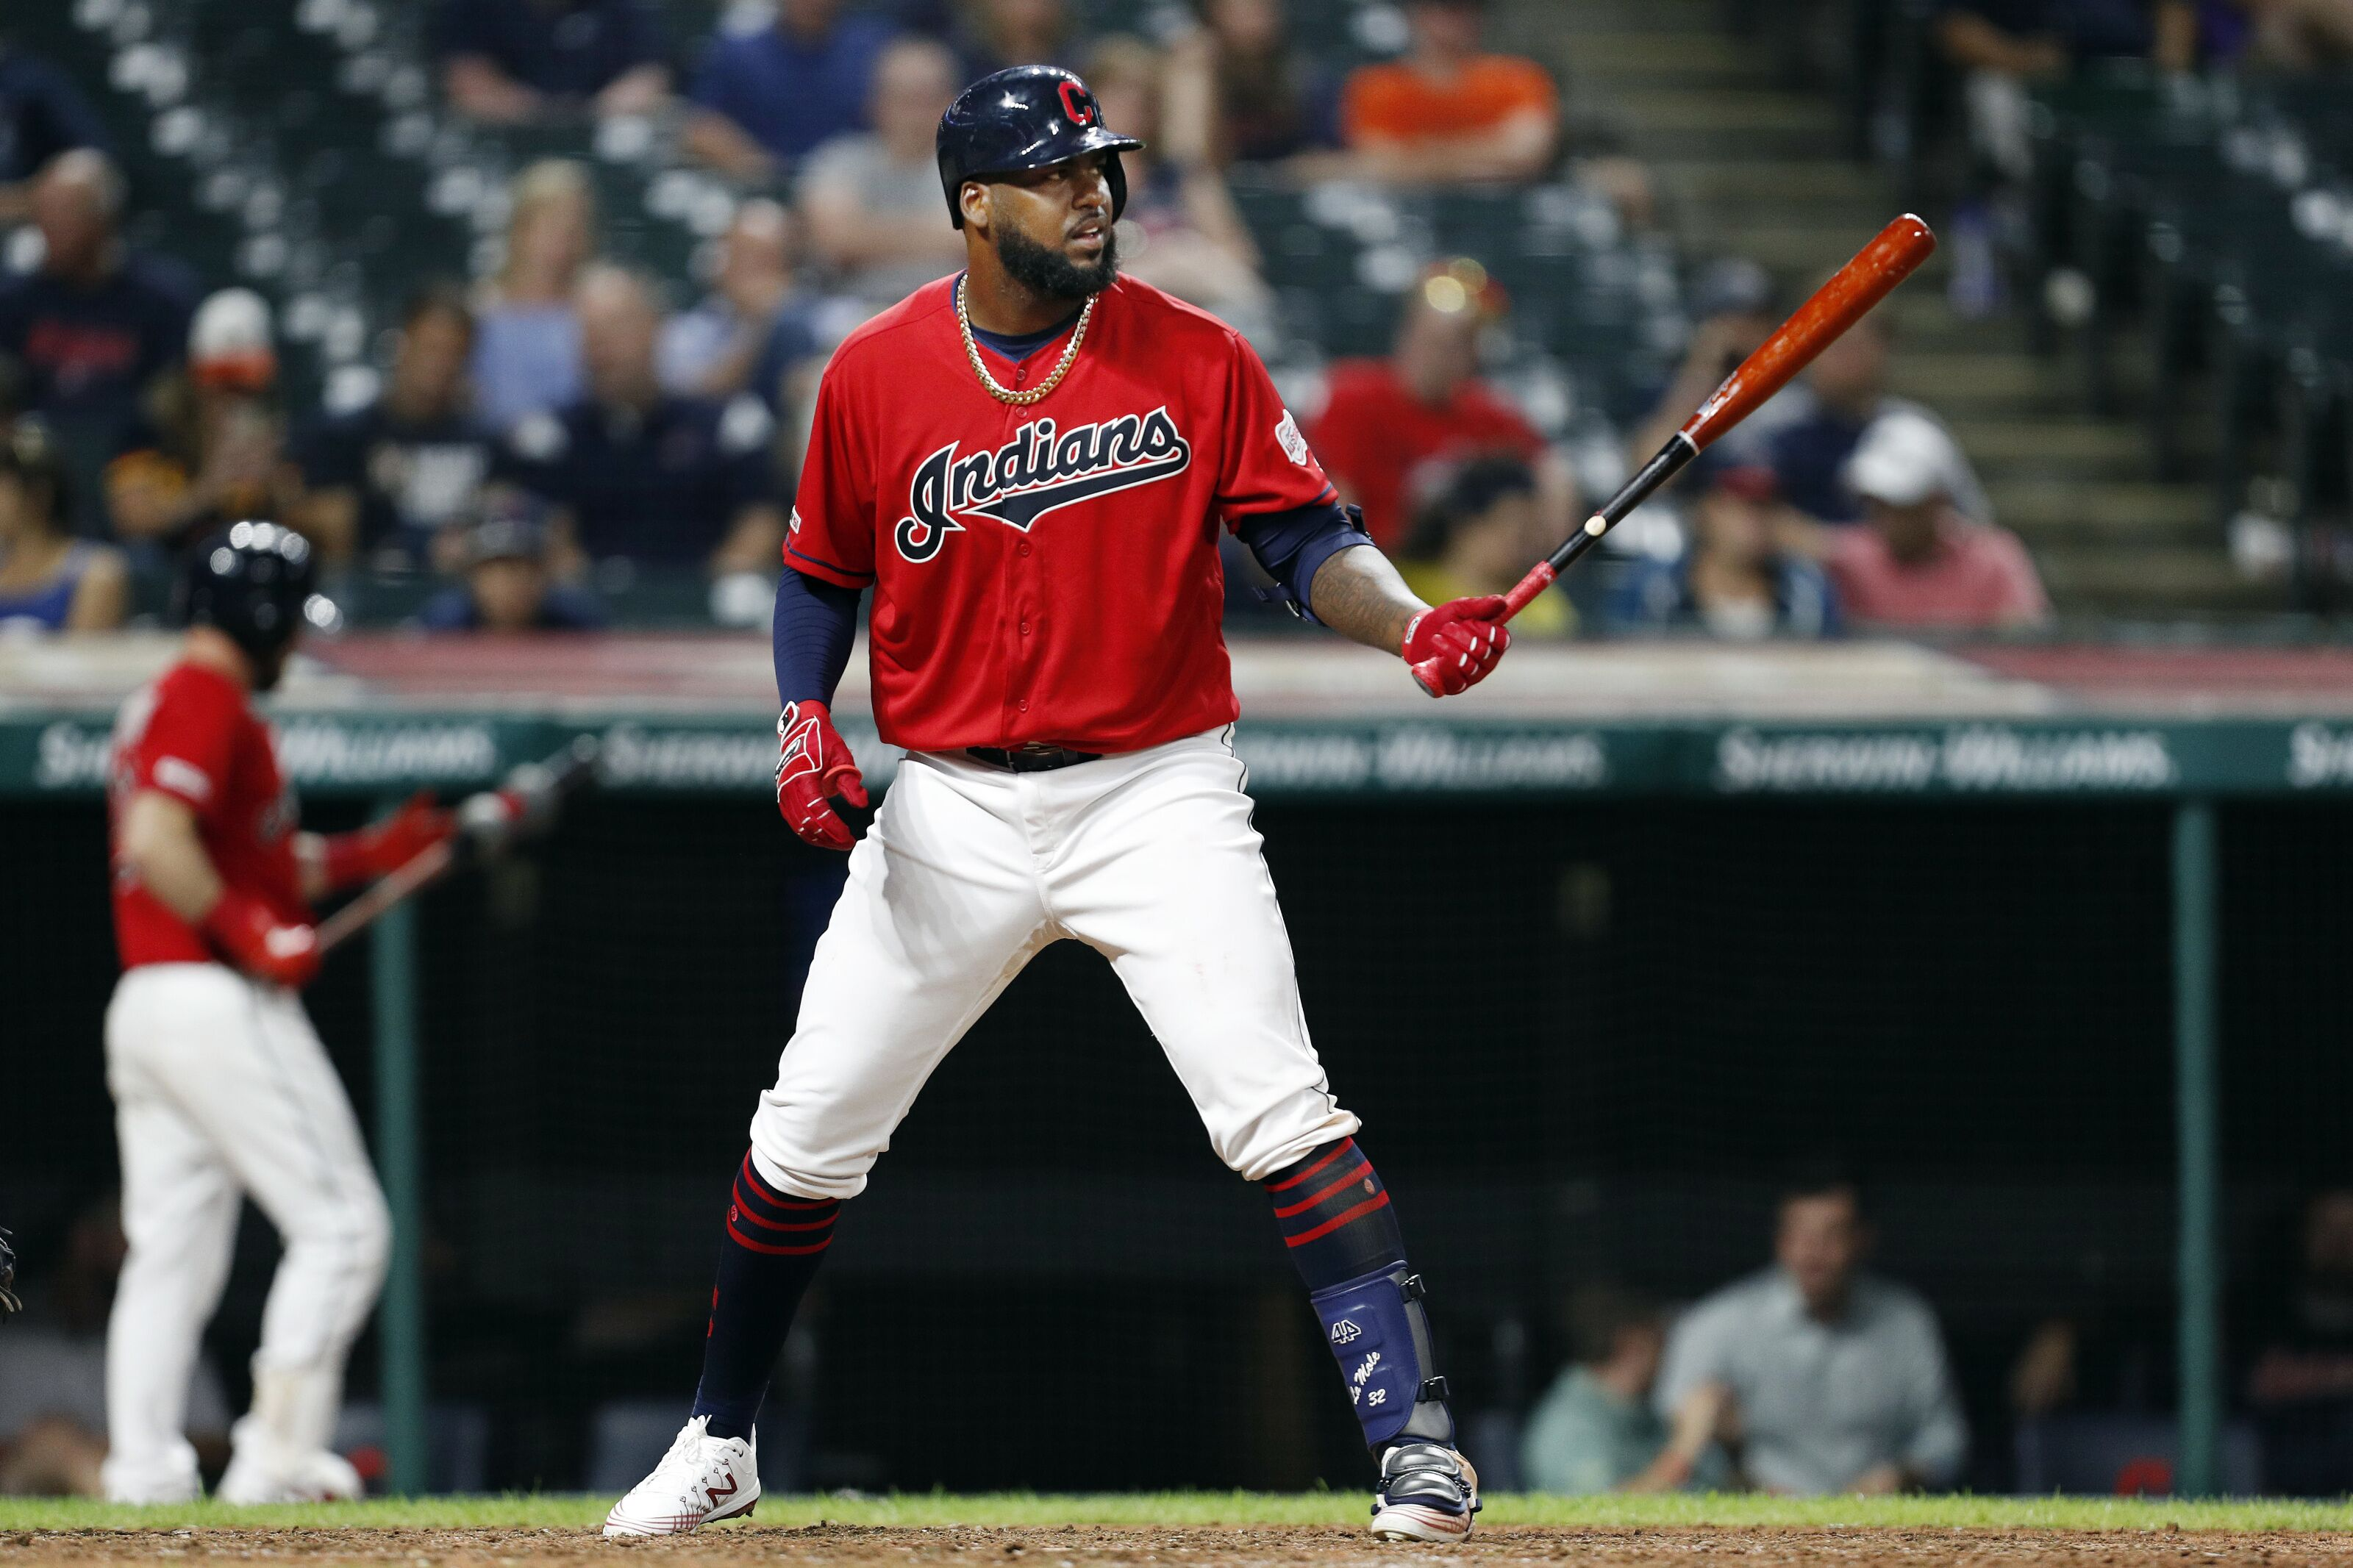 Cleveland Indians: Tribe set to face three lefties in LA